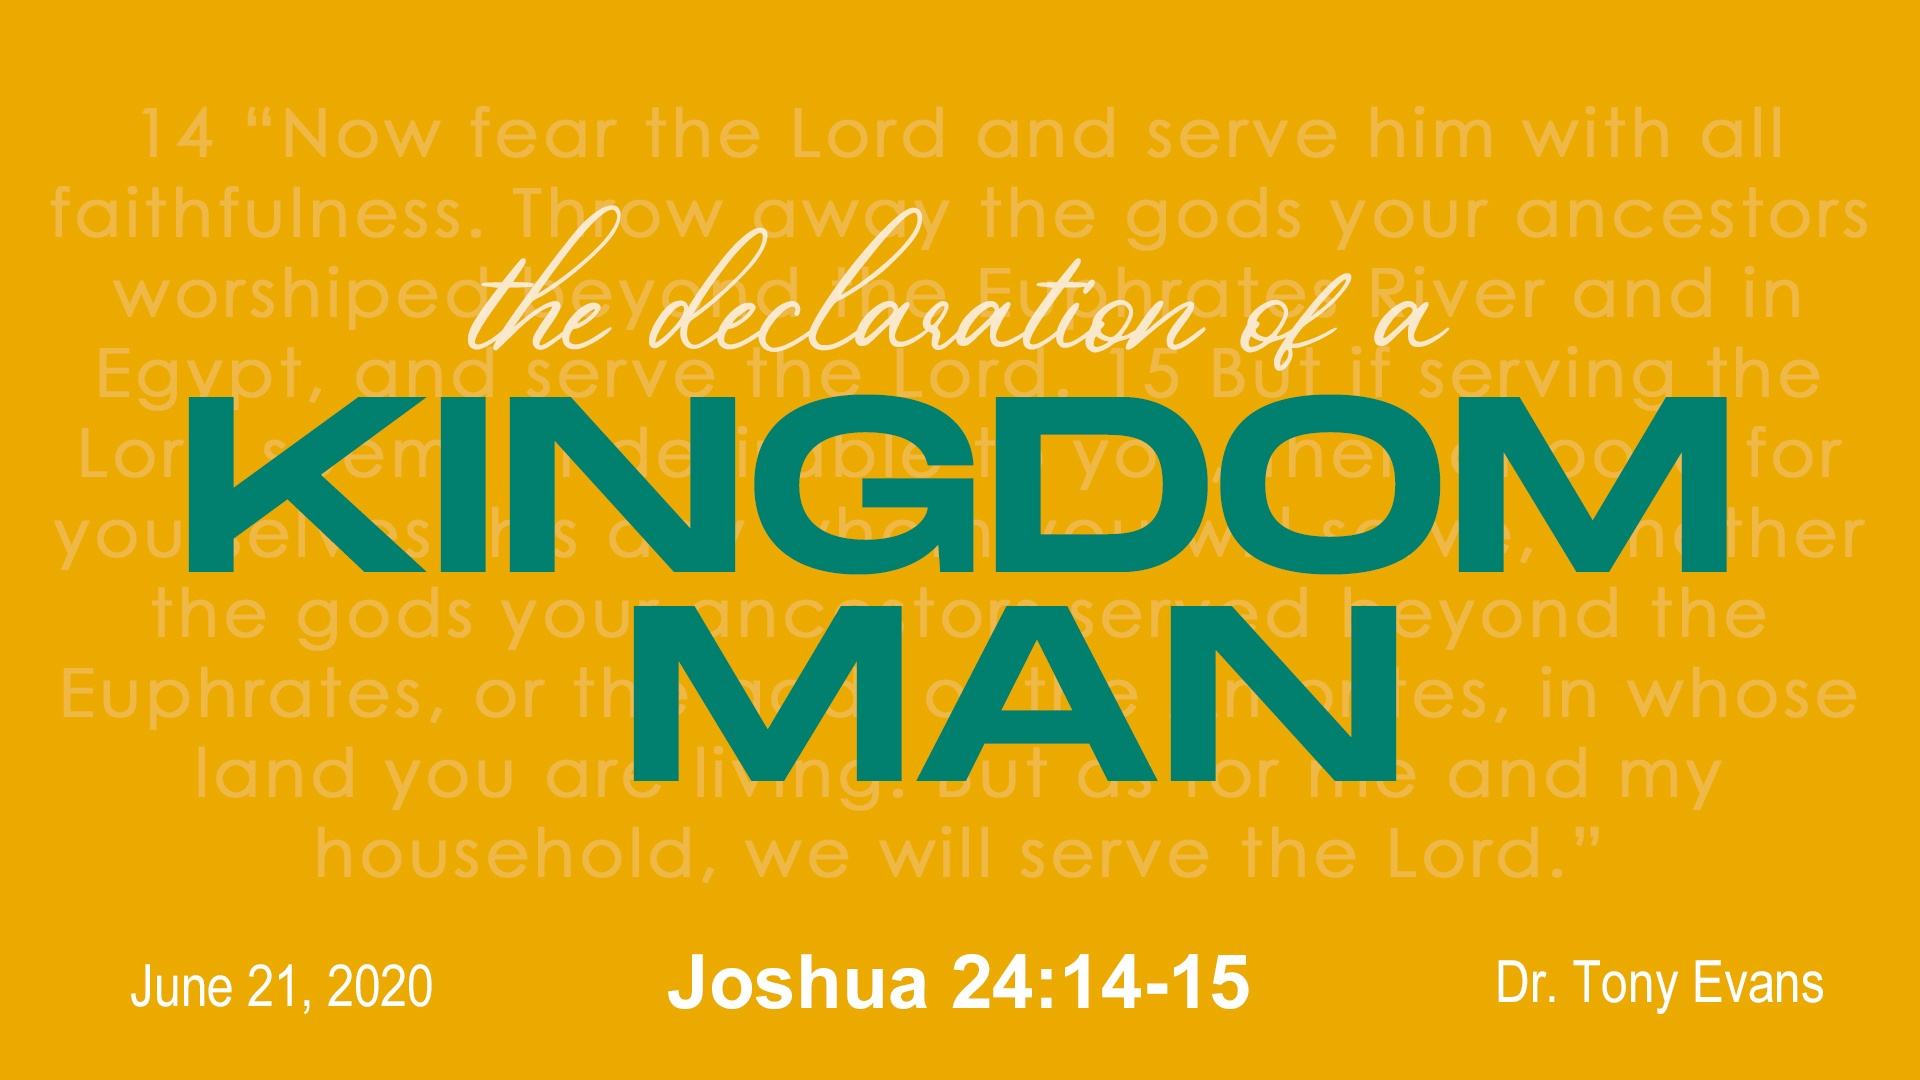 Declaration of a Kingdom Man from Joshua 24:14-15 by Dr. Tony Evans